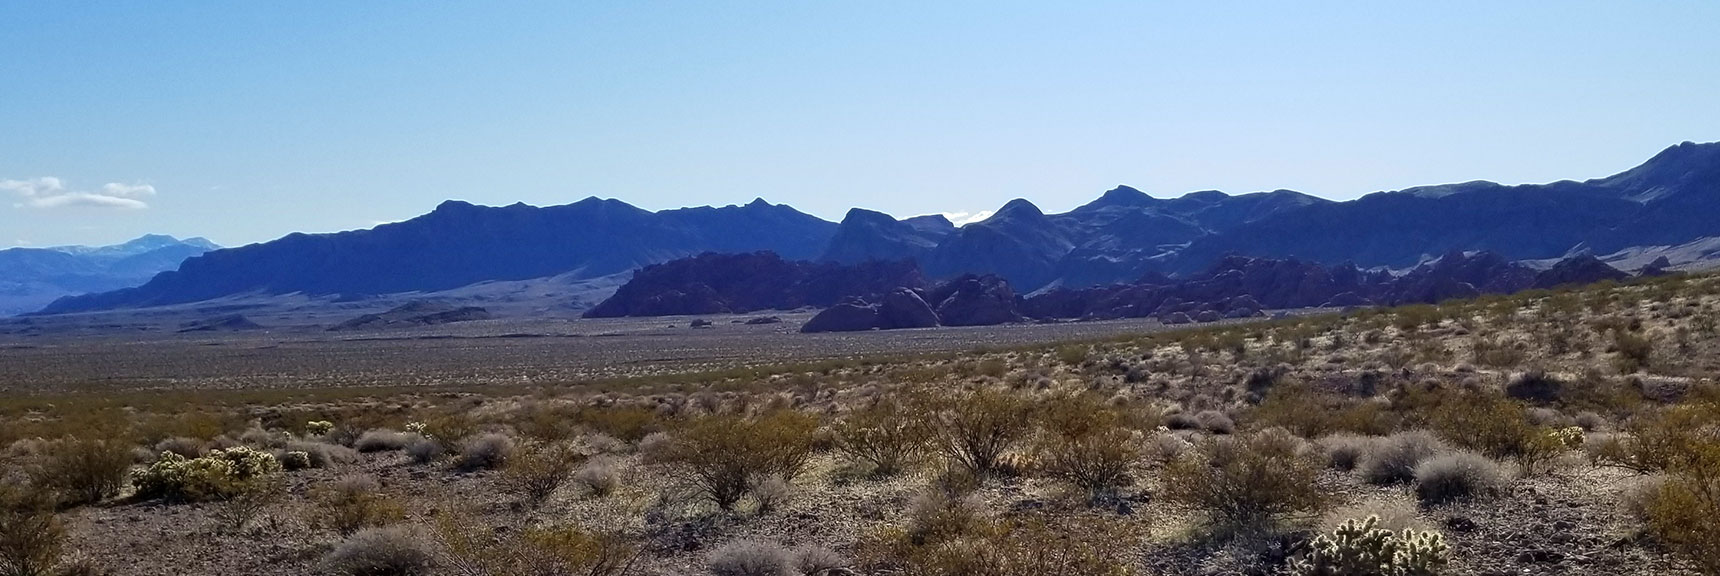 Looking Across to the Trailhead of Pinnacles Loop Trail in Valley of Fire State Park, Nevada